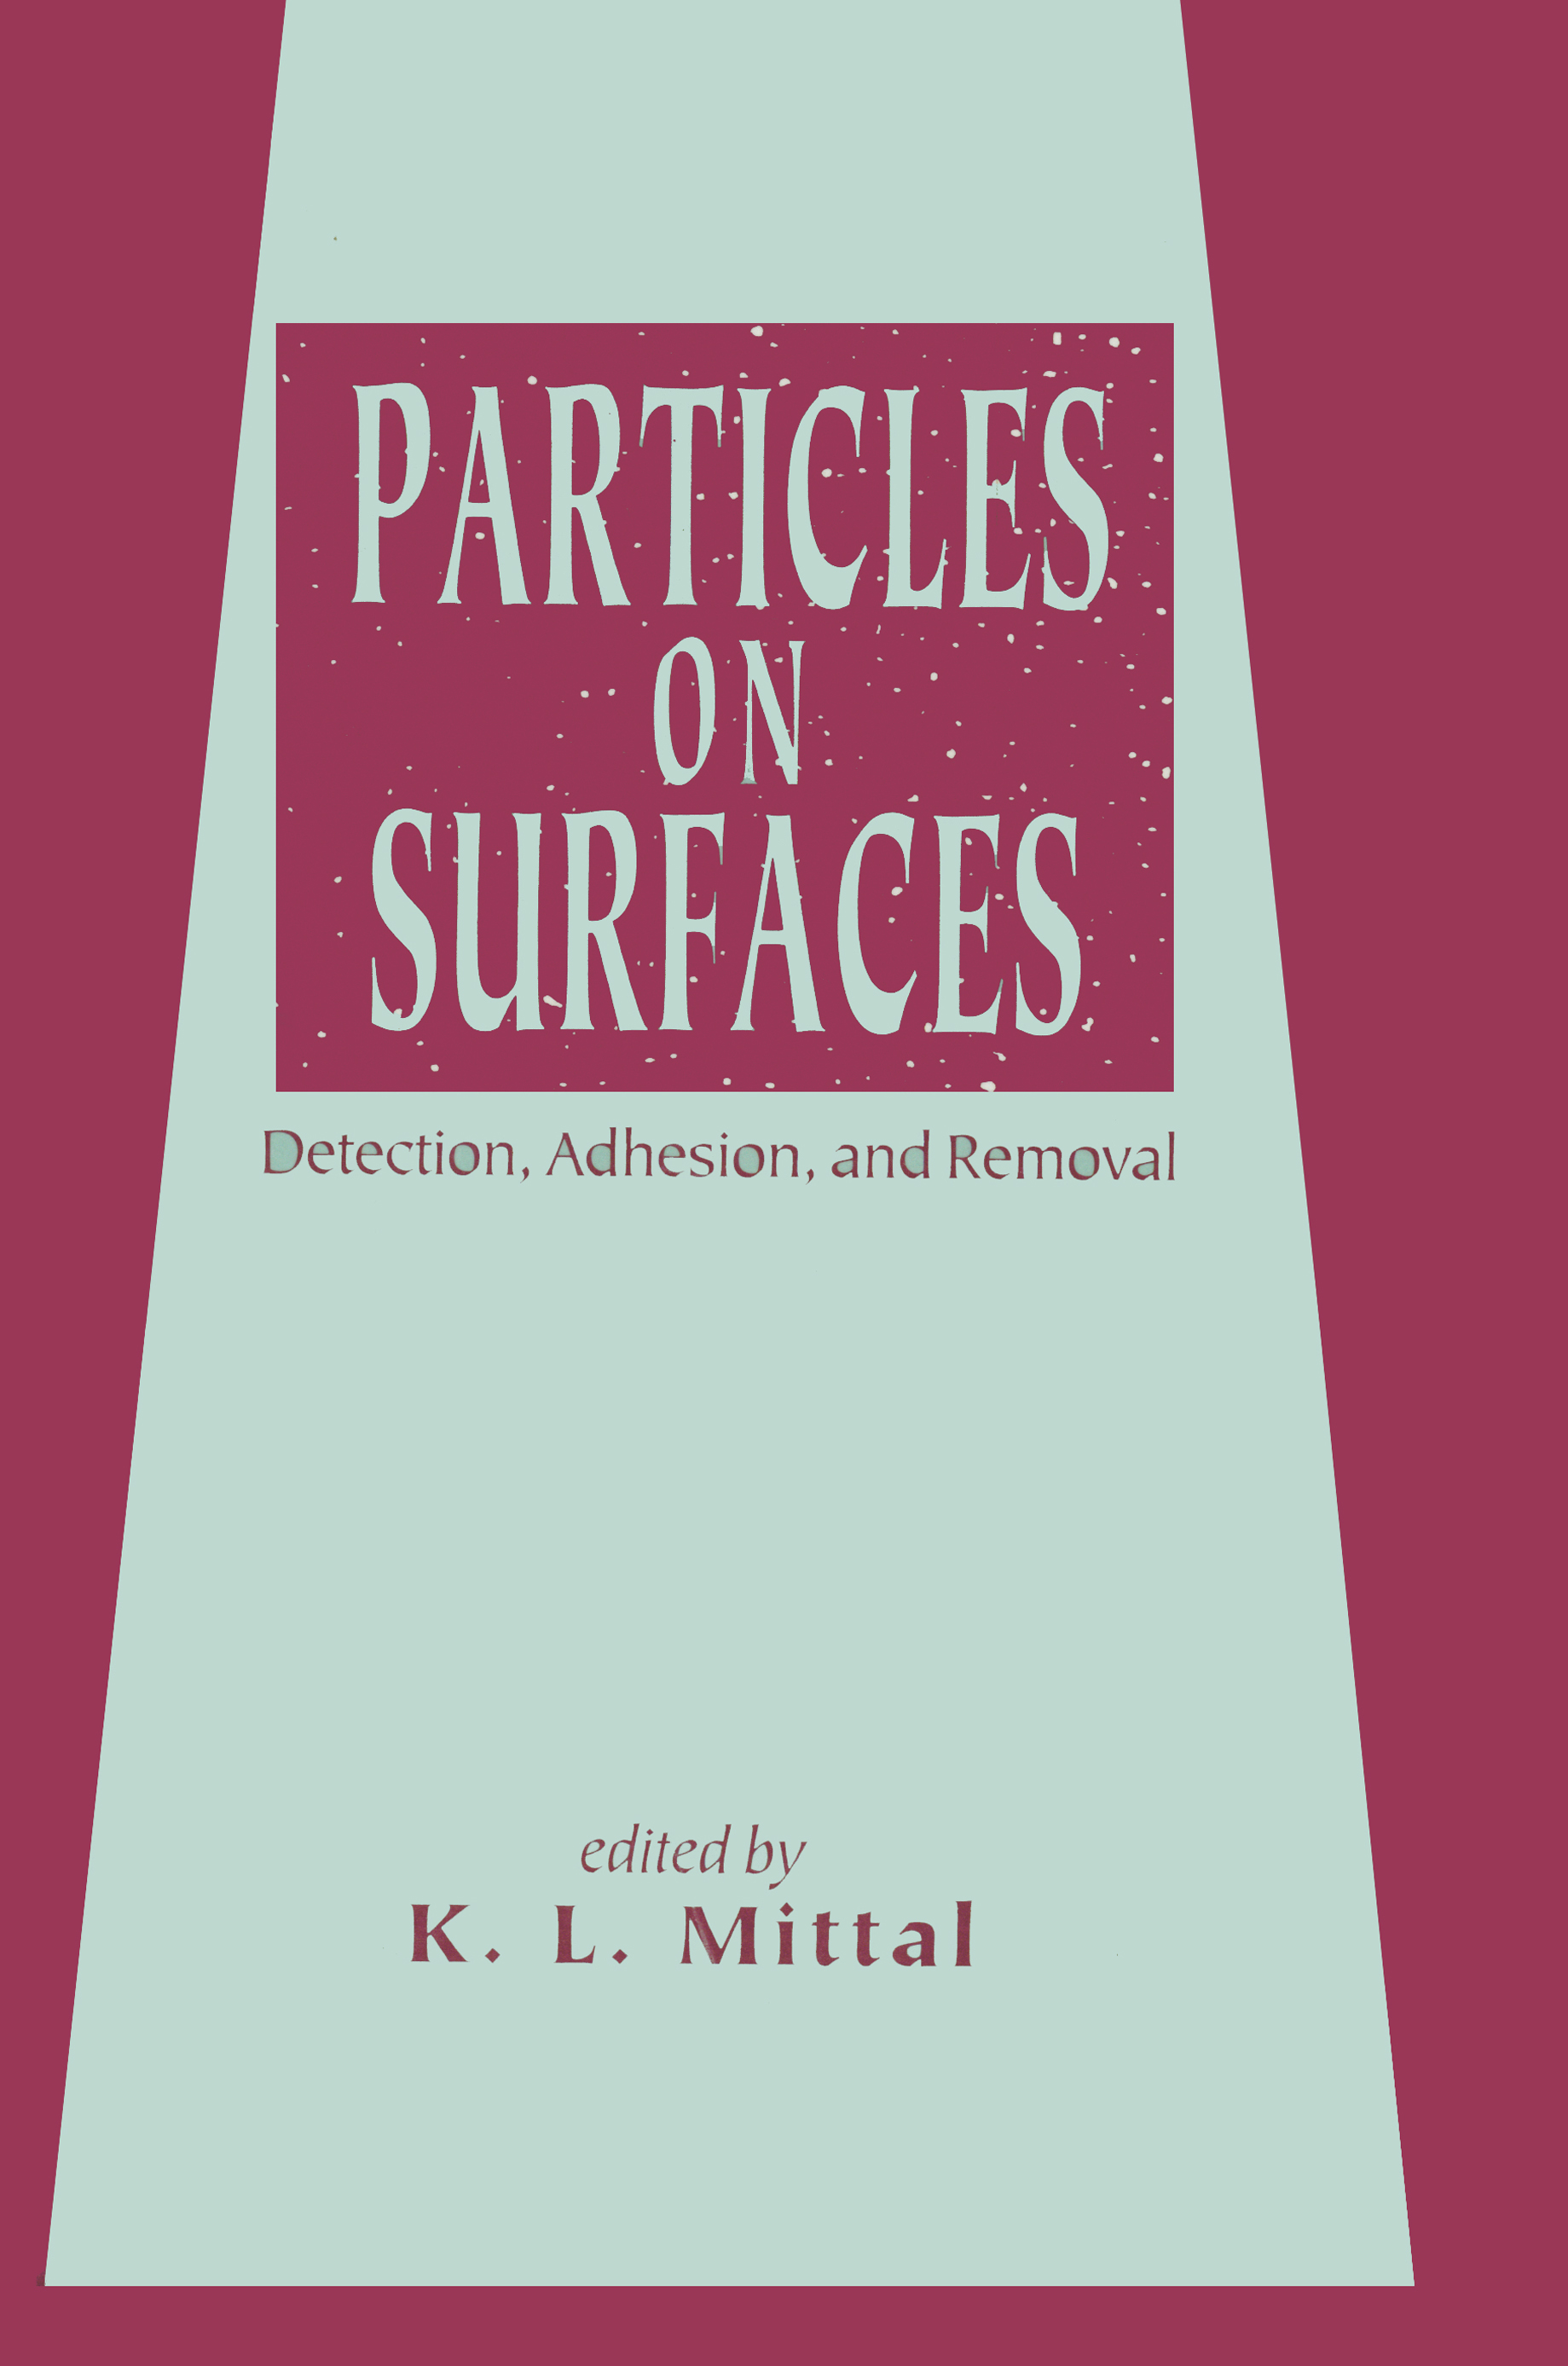 Particle Characterization on Surfaces by Auger Electron Spectroscopy